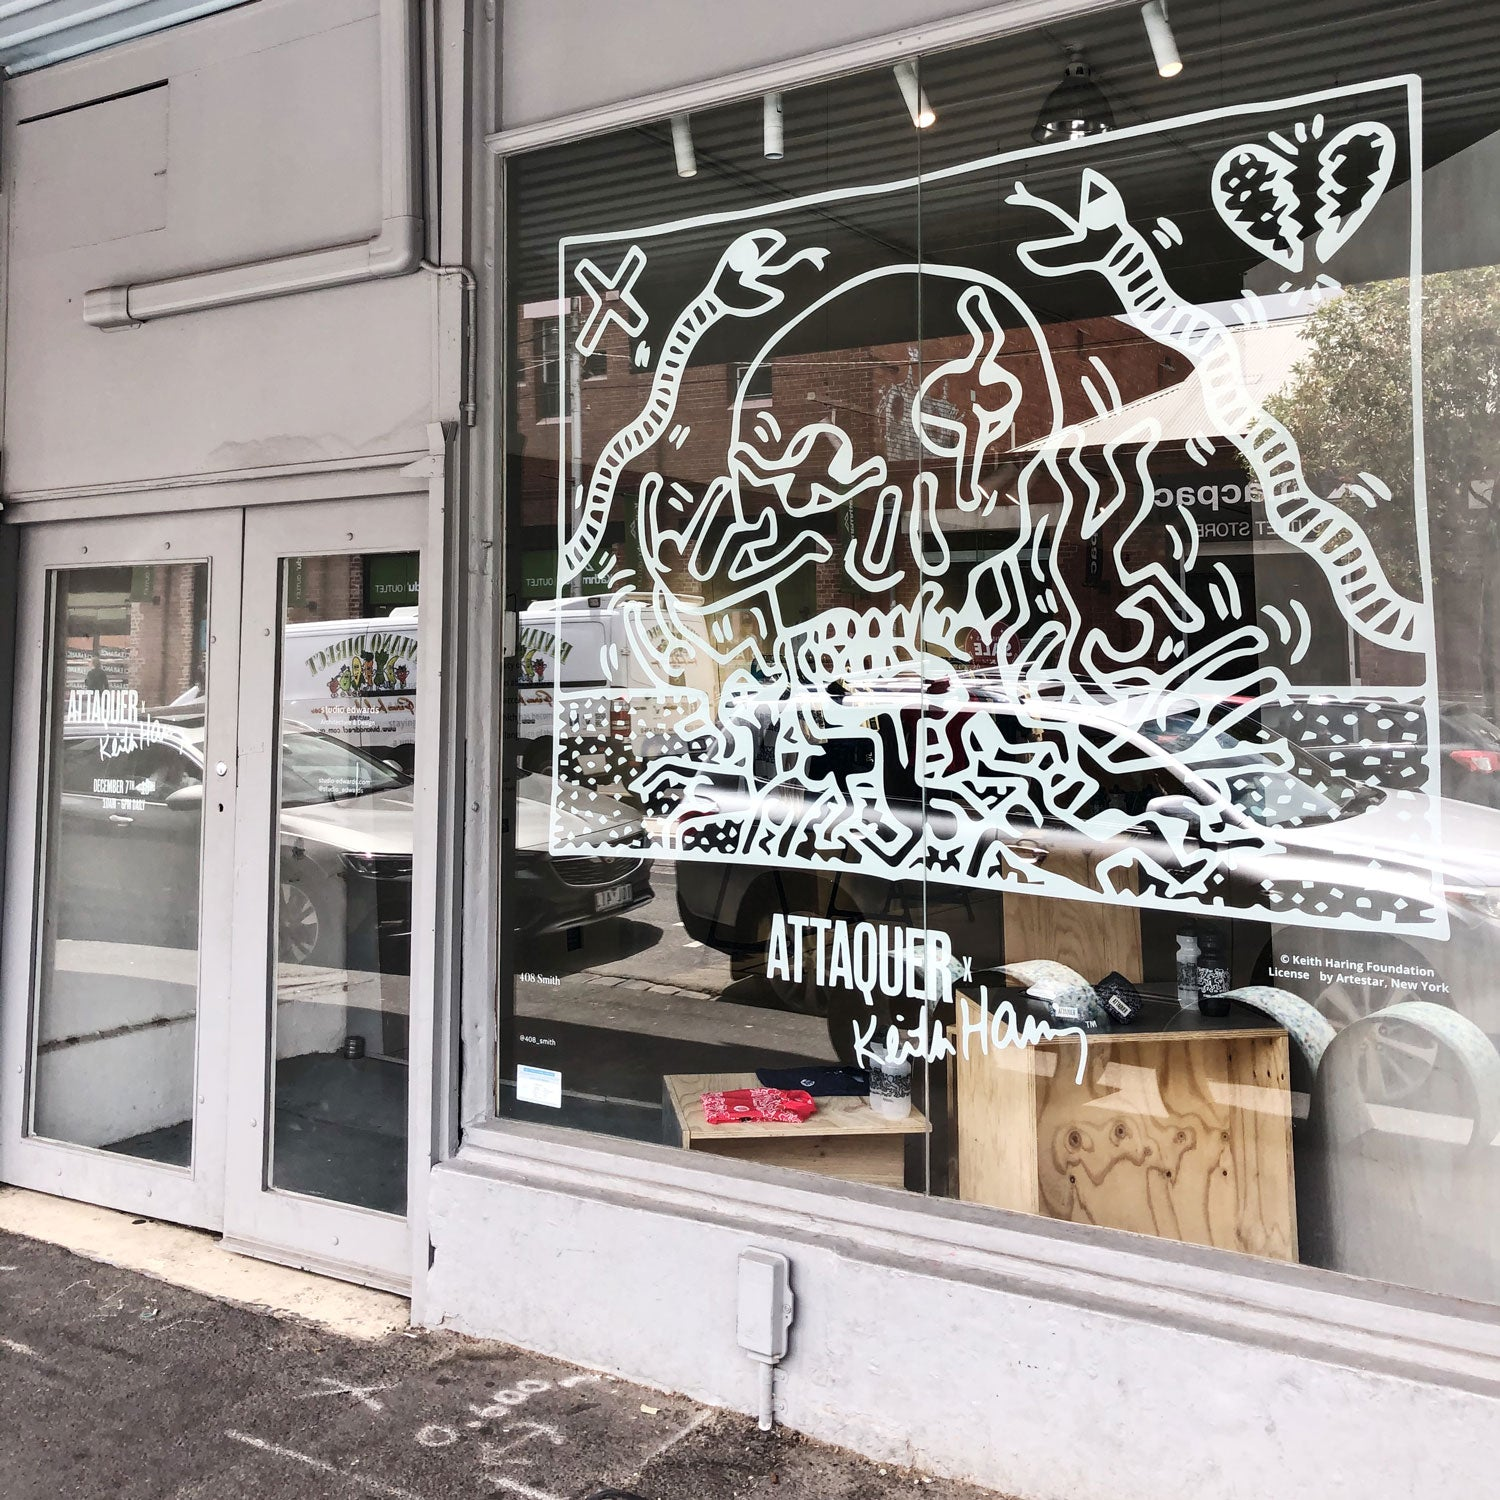 Keith Haring Pop Up Shop Melbourne